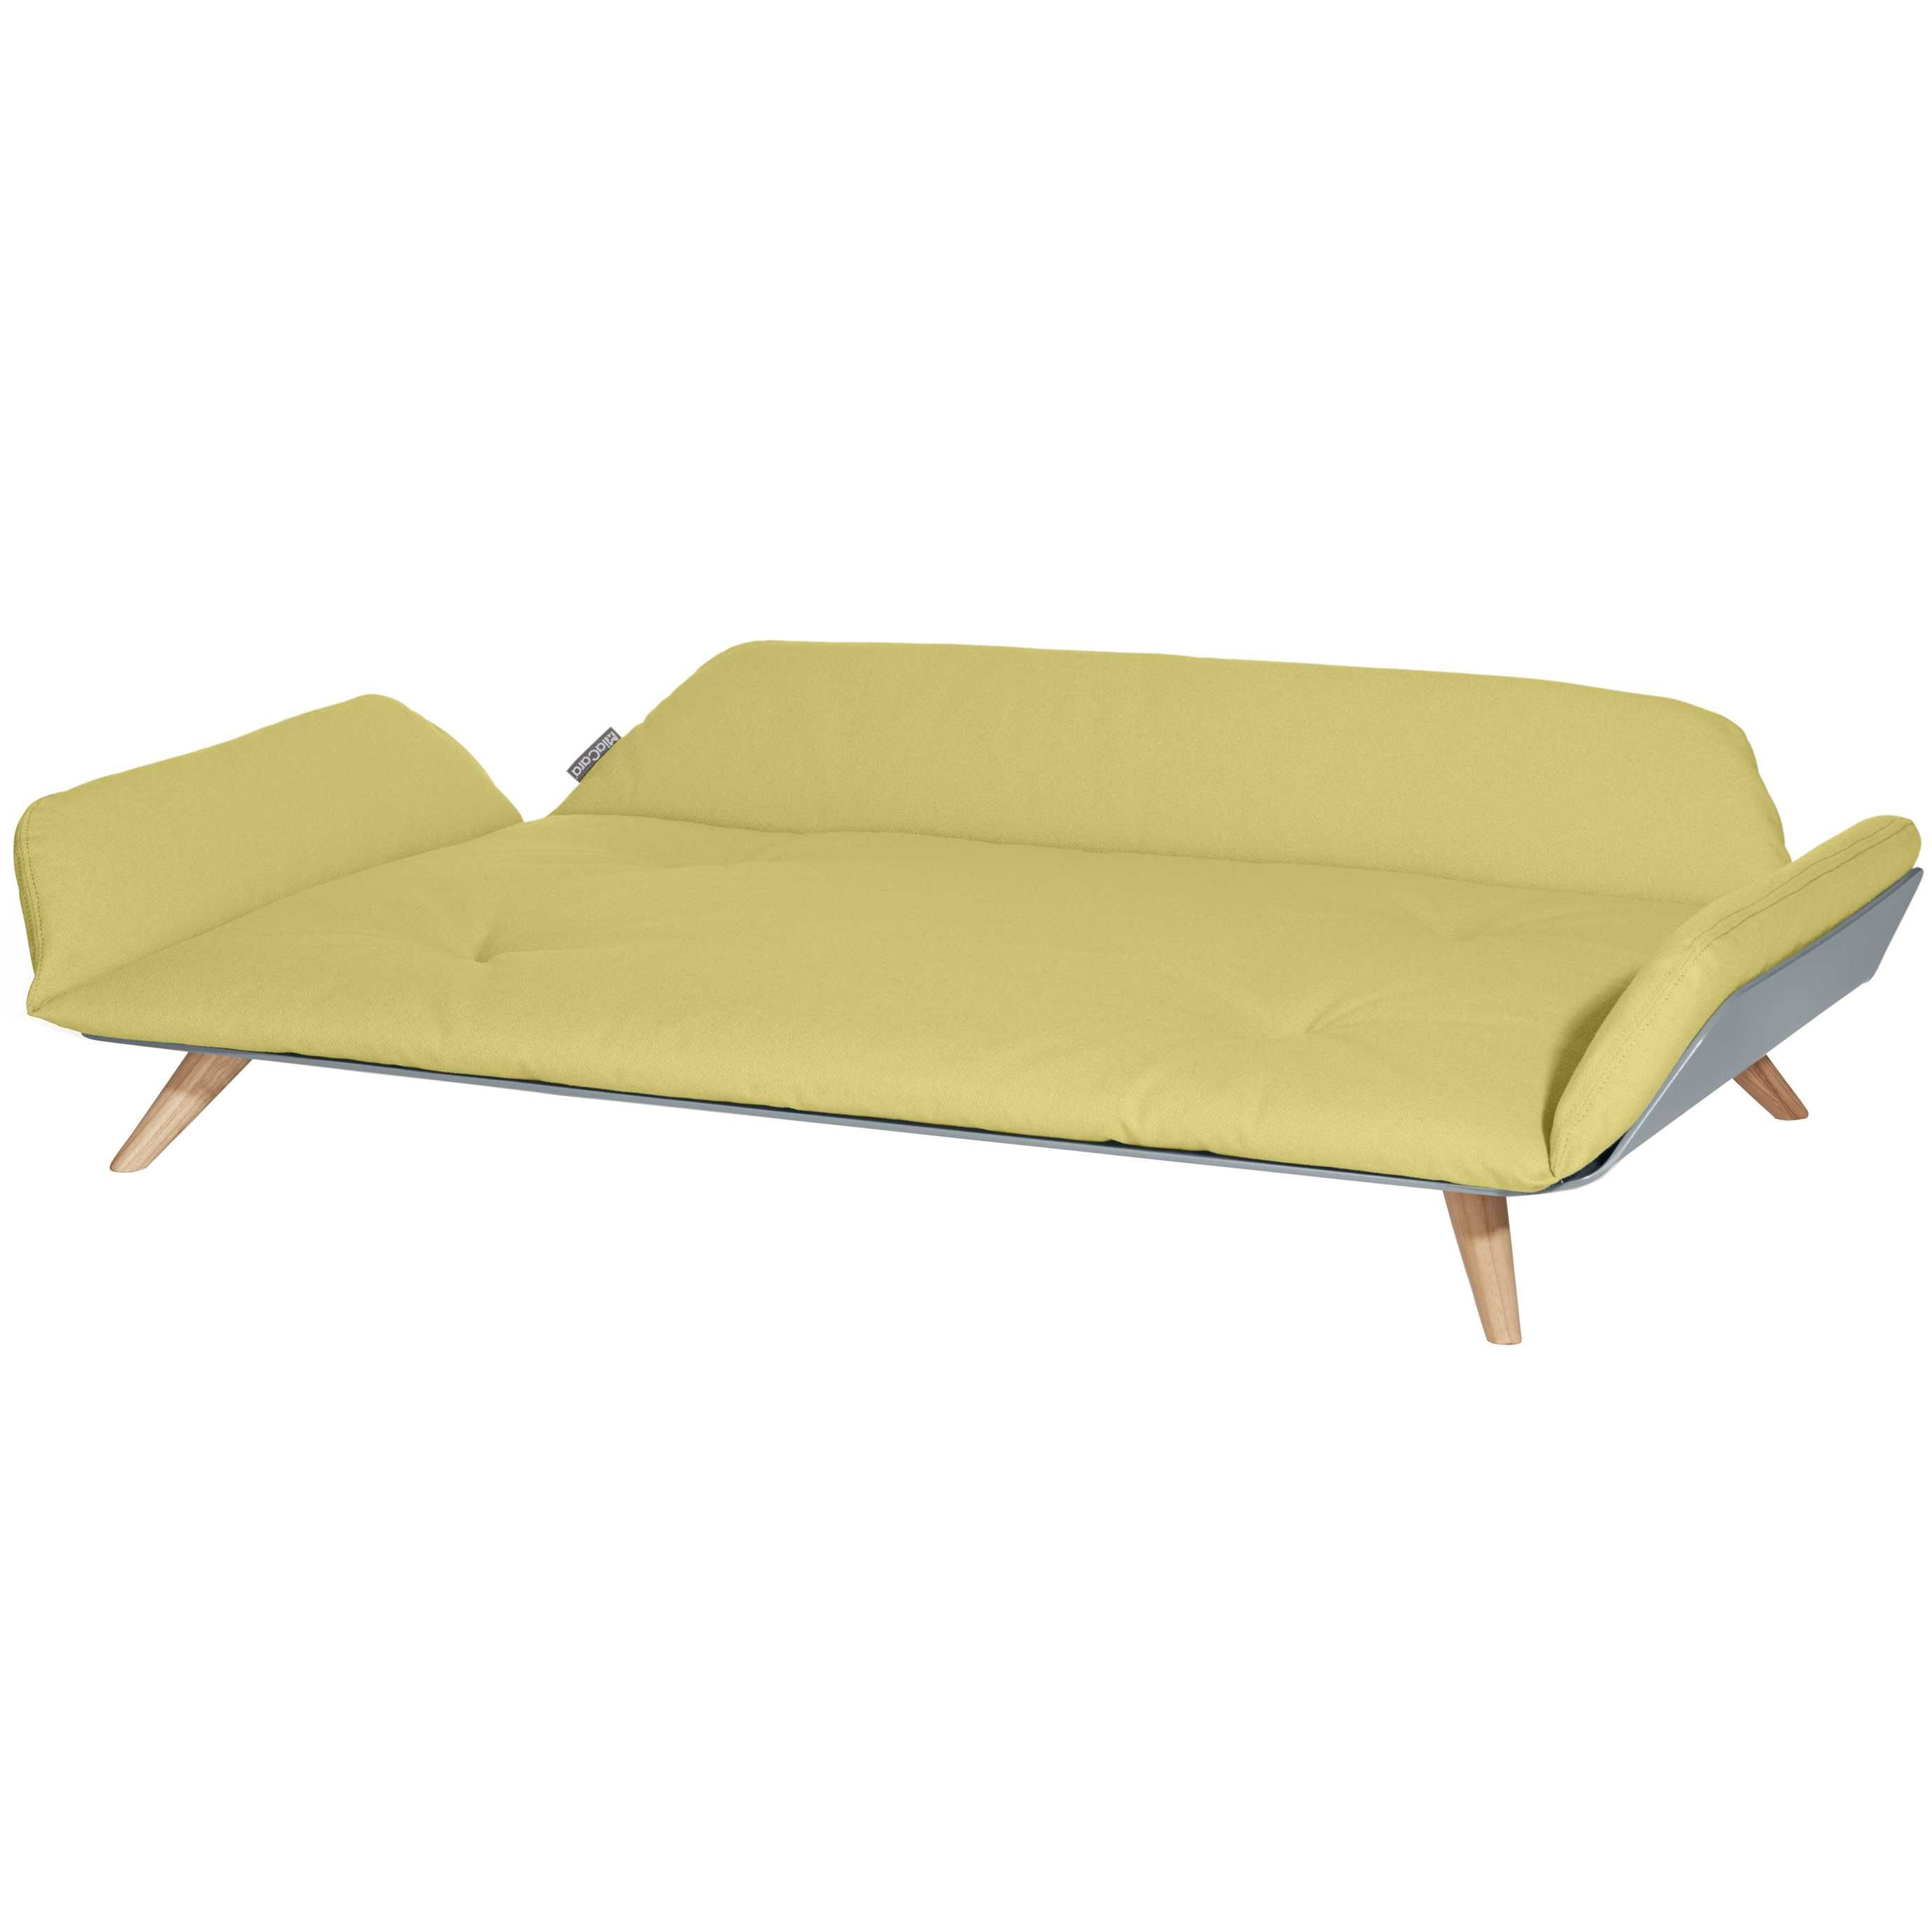 MiaCara Letto daybed hondenmand ginger yellow kopen